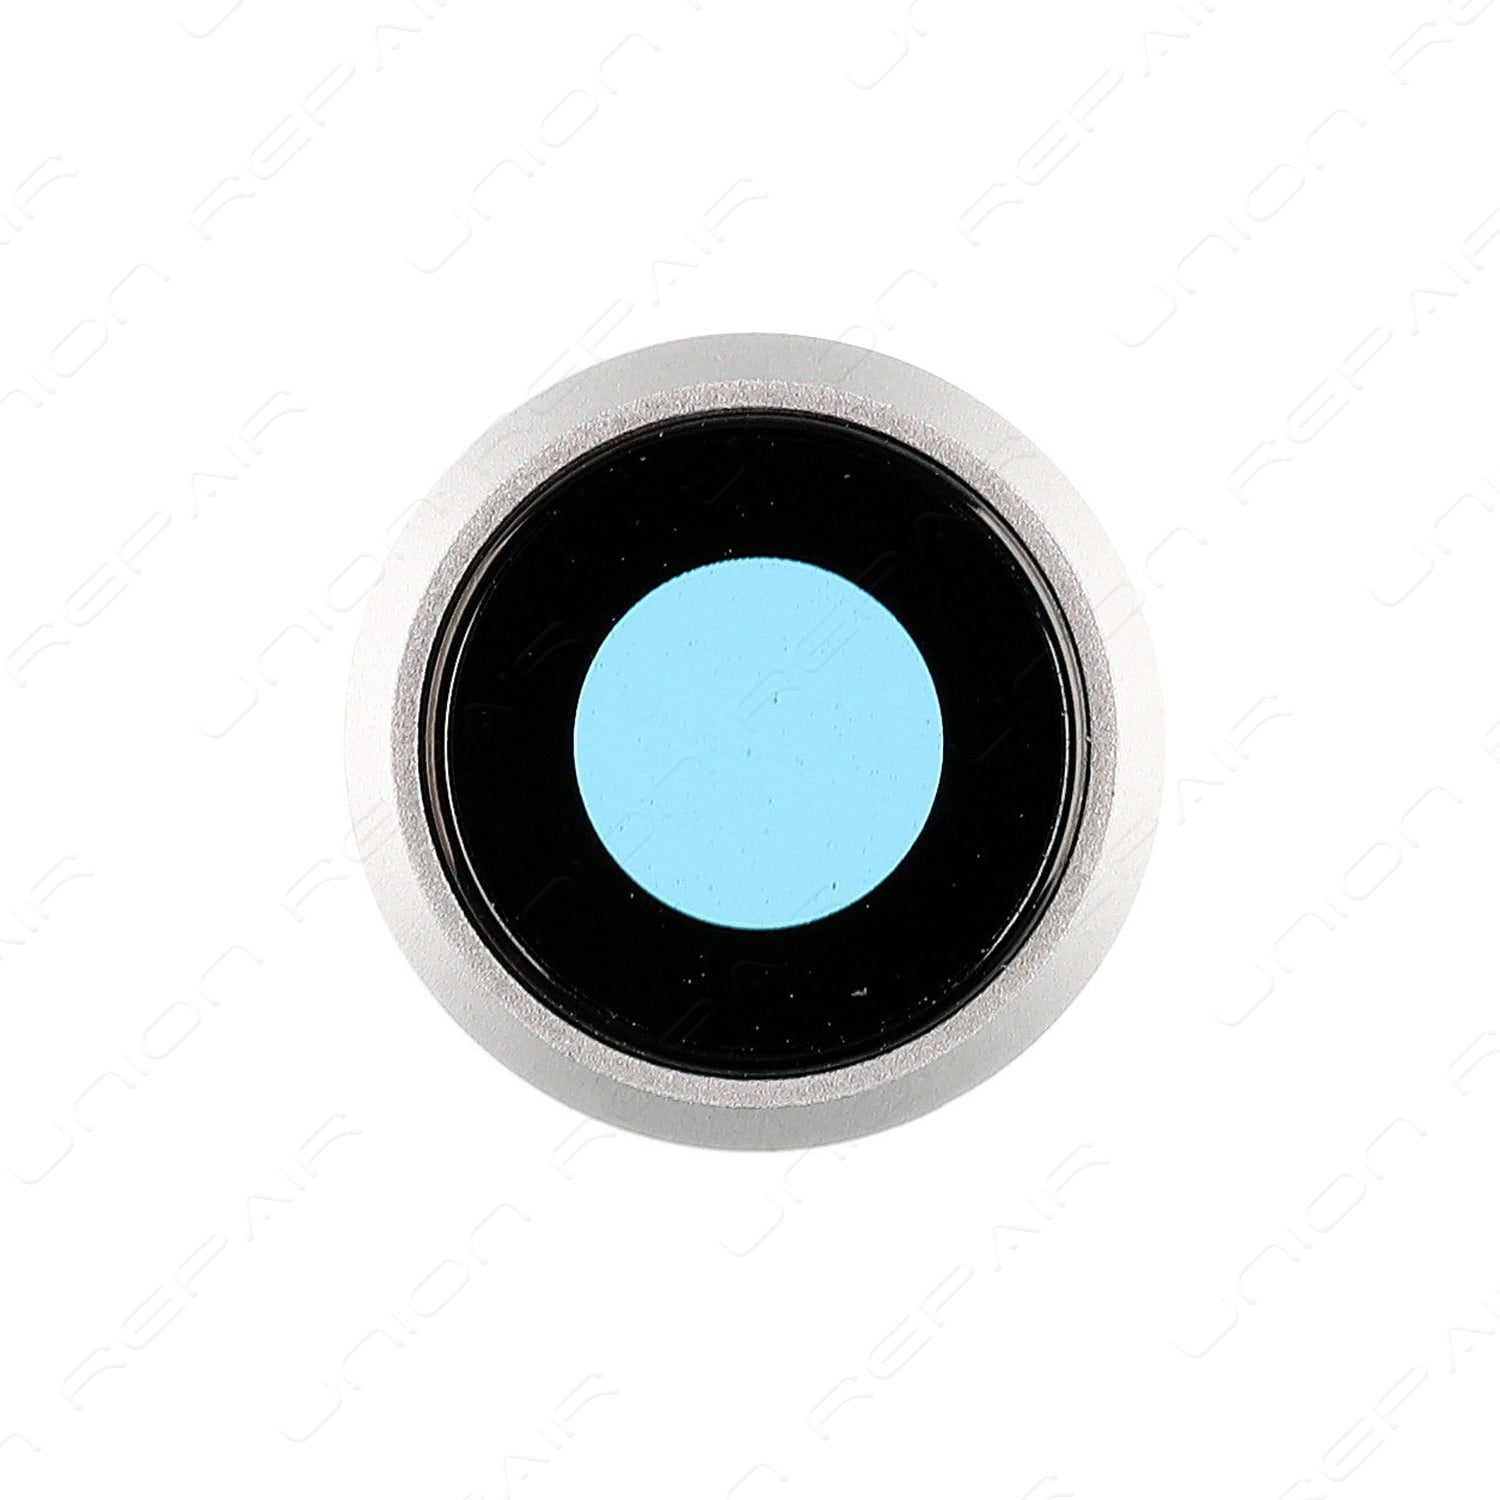 iPhone 8 Camera Lens Silver